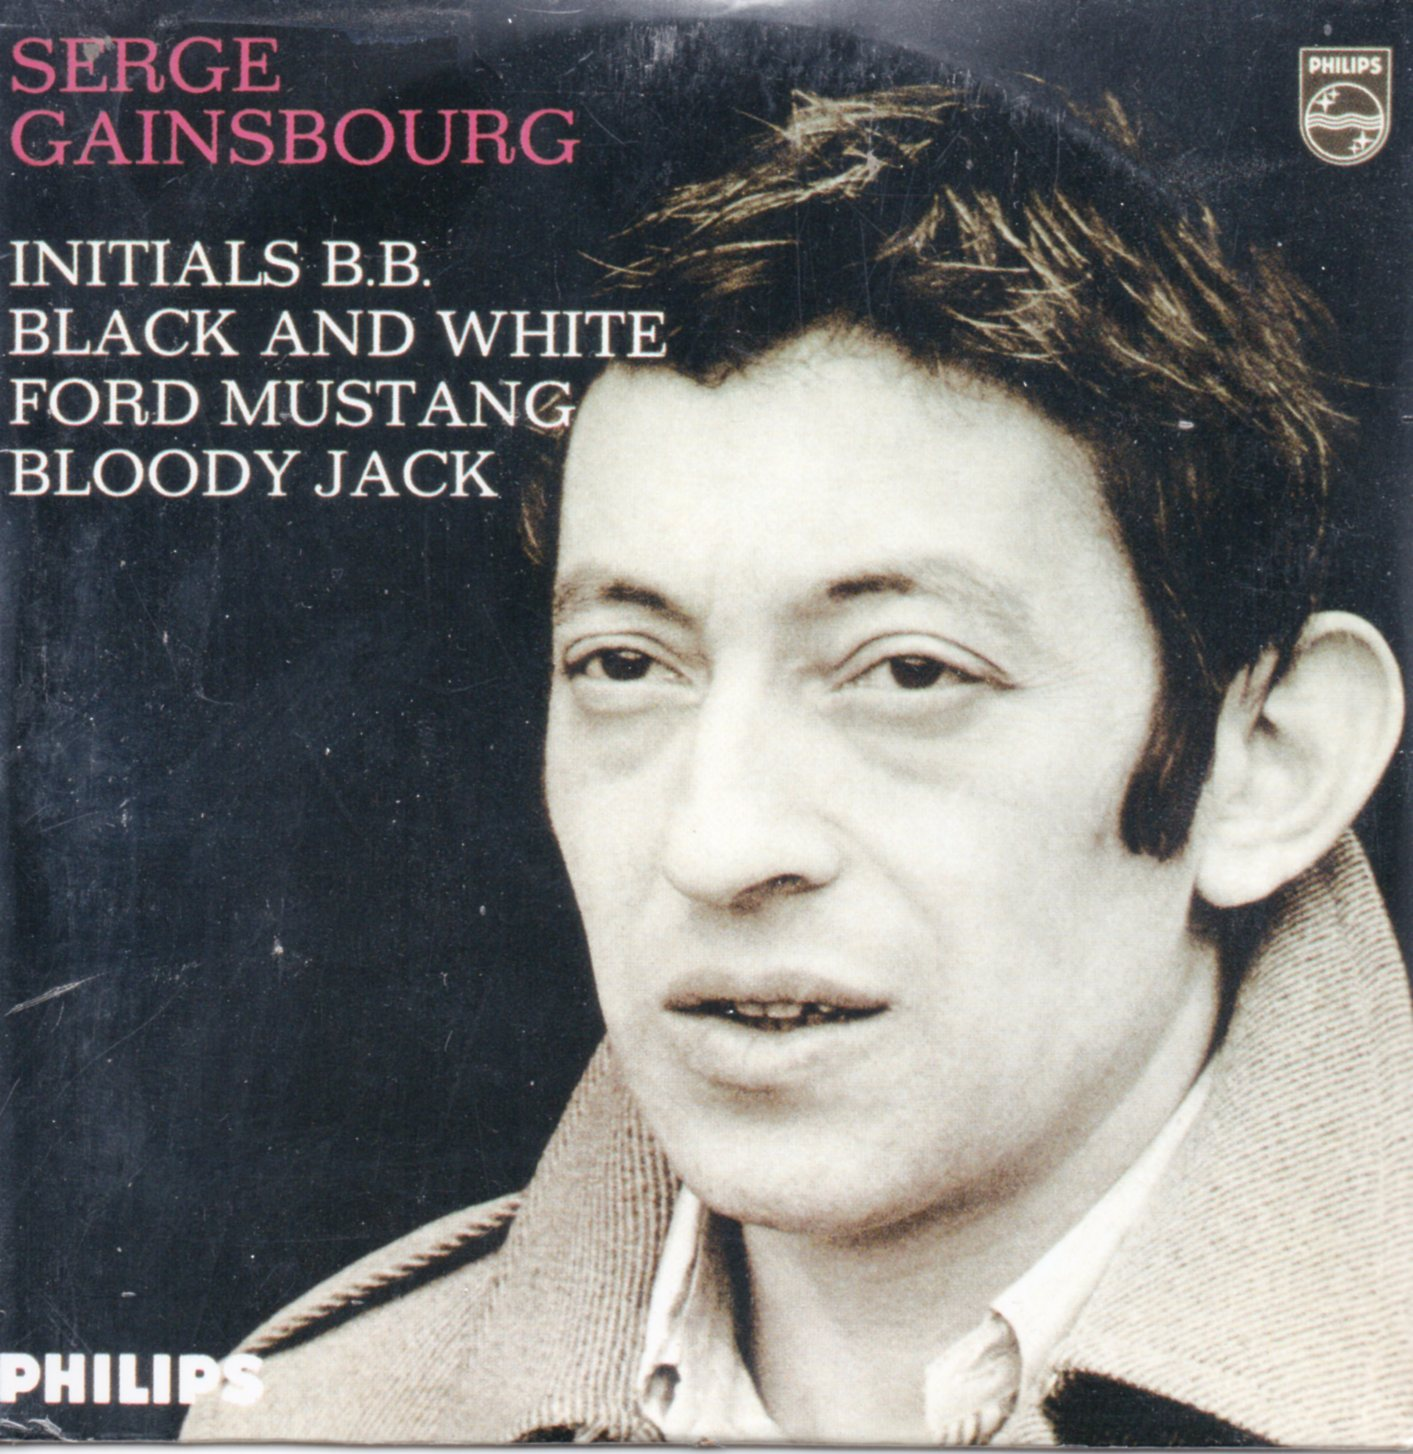 SERGE GAINSBOURG - Initials BB Strictly Ltd numbered edition 4-track CARD SLEEVE - CD single